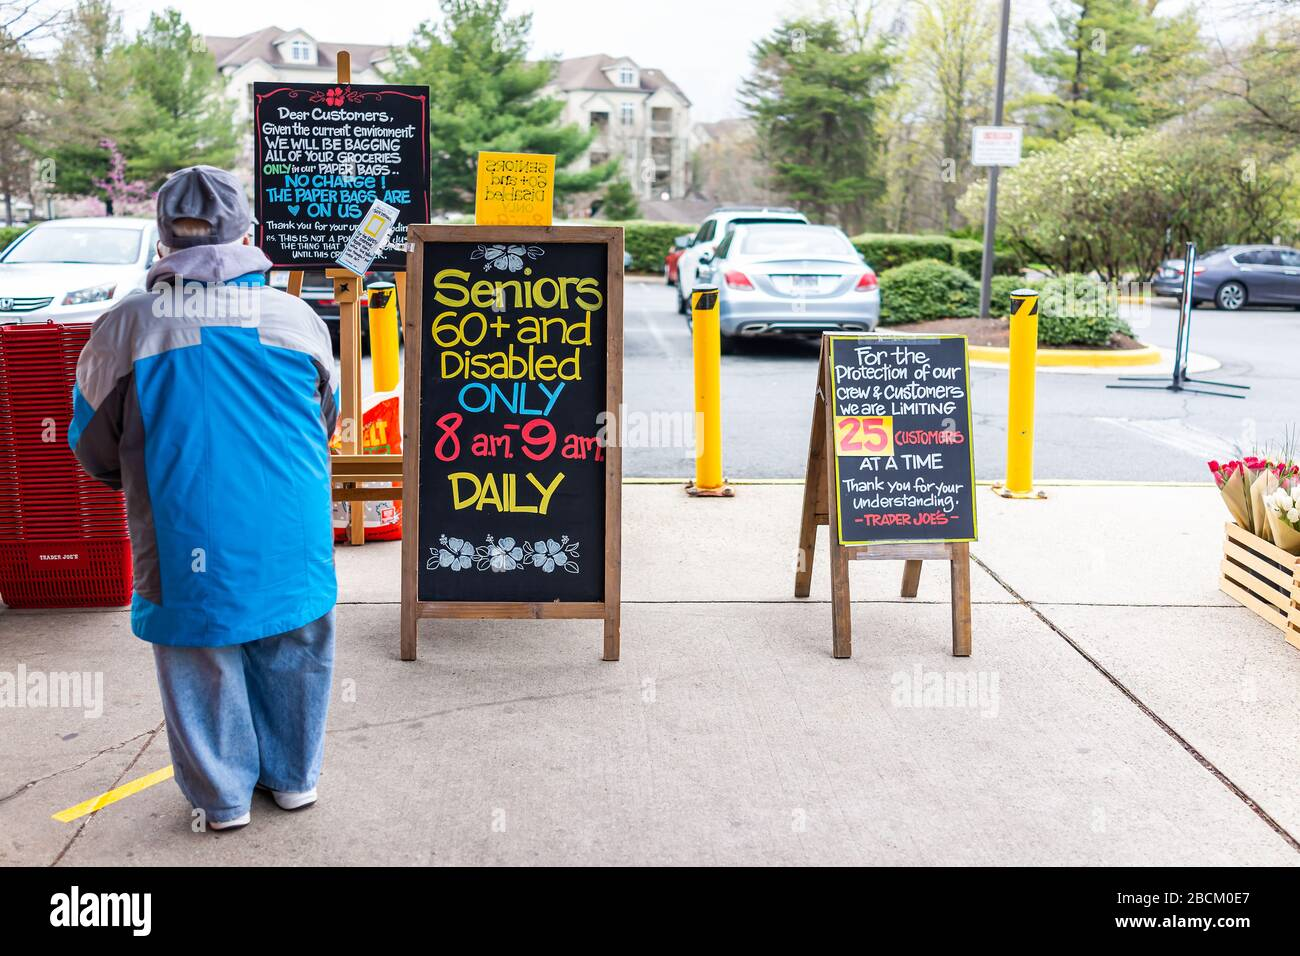 Reston, USA - April 1, 2020: Trader Joe's grocery store sign for senior disabled customers special hours, customer limit and grocery bagging paper bag Stock Photo